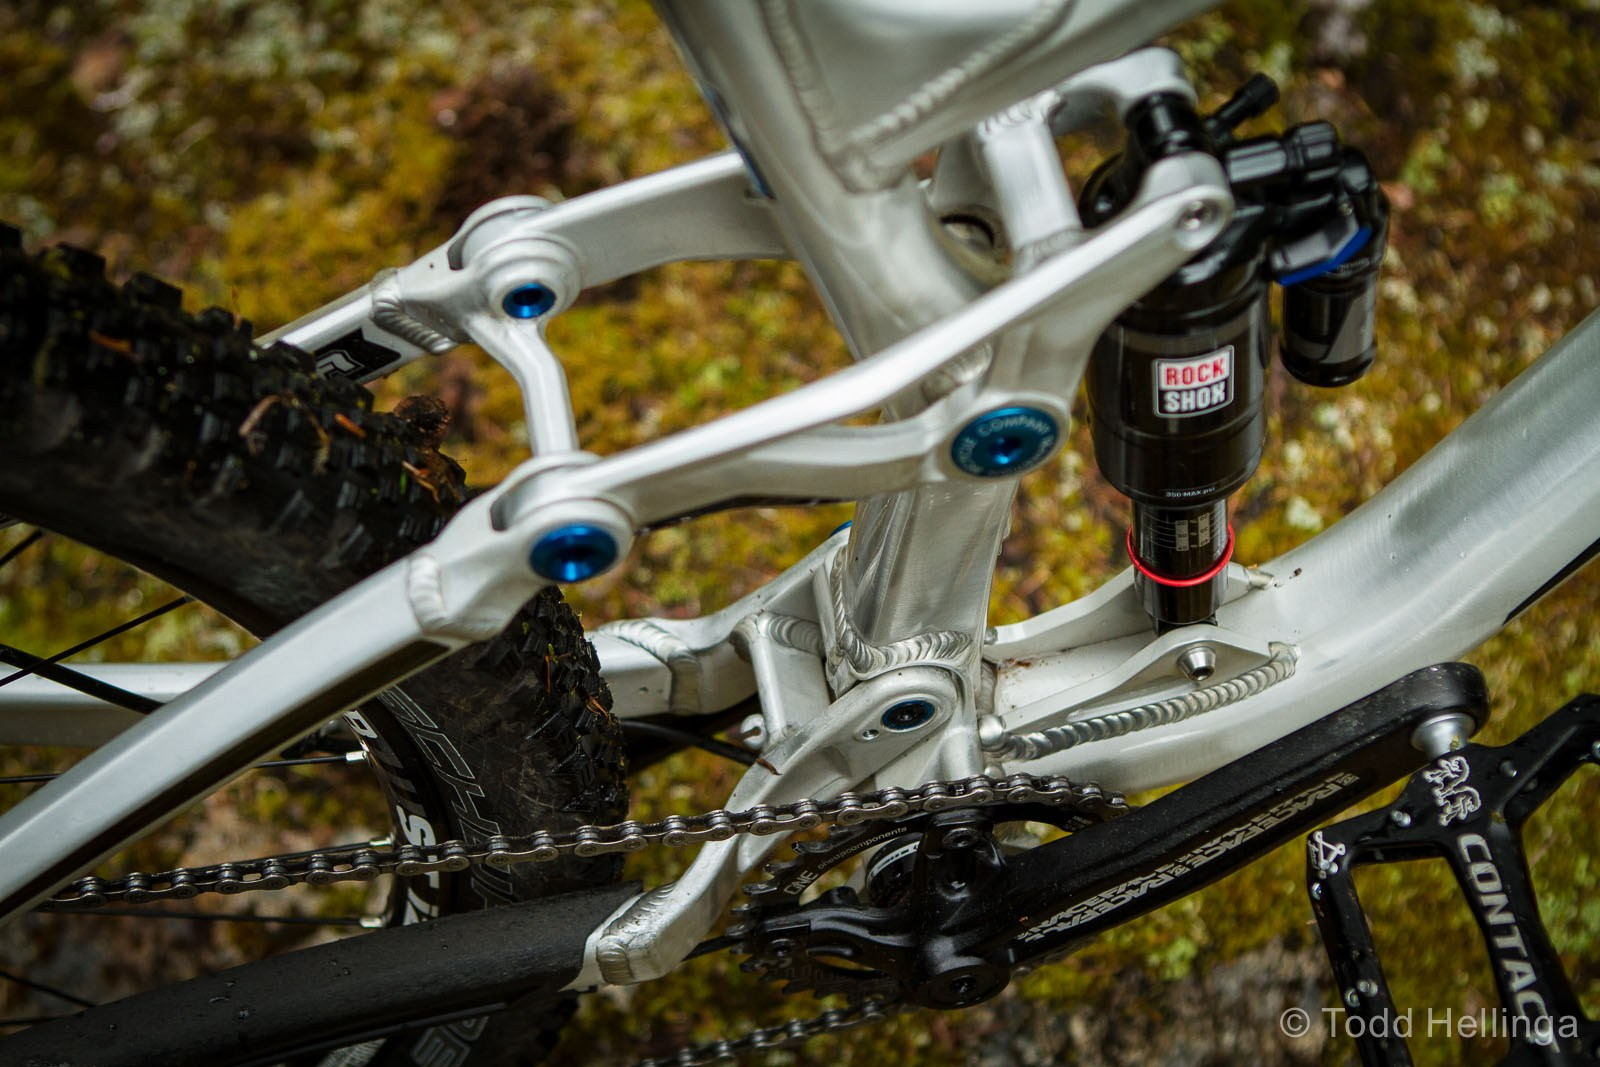 Front derailleur E2 low direct mount for those that aren't afraid of technology that improves your gear range and versatility, or you can run it 1x and have an insane amount of clearance. It's nice to see companies still offering consumers a choice in drivetrain considerations.